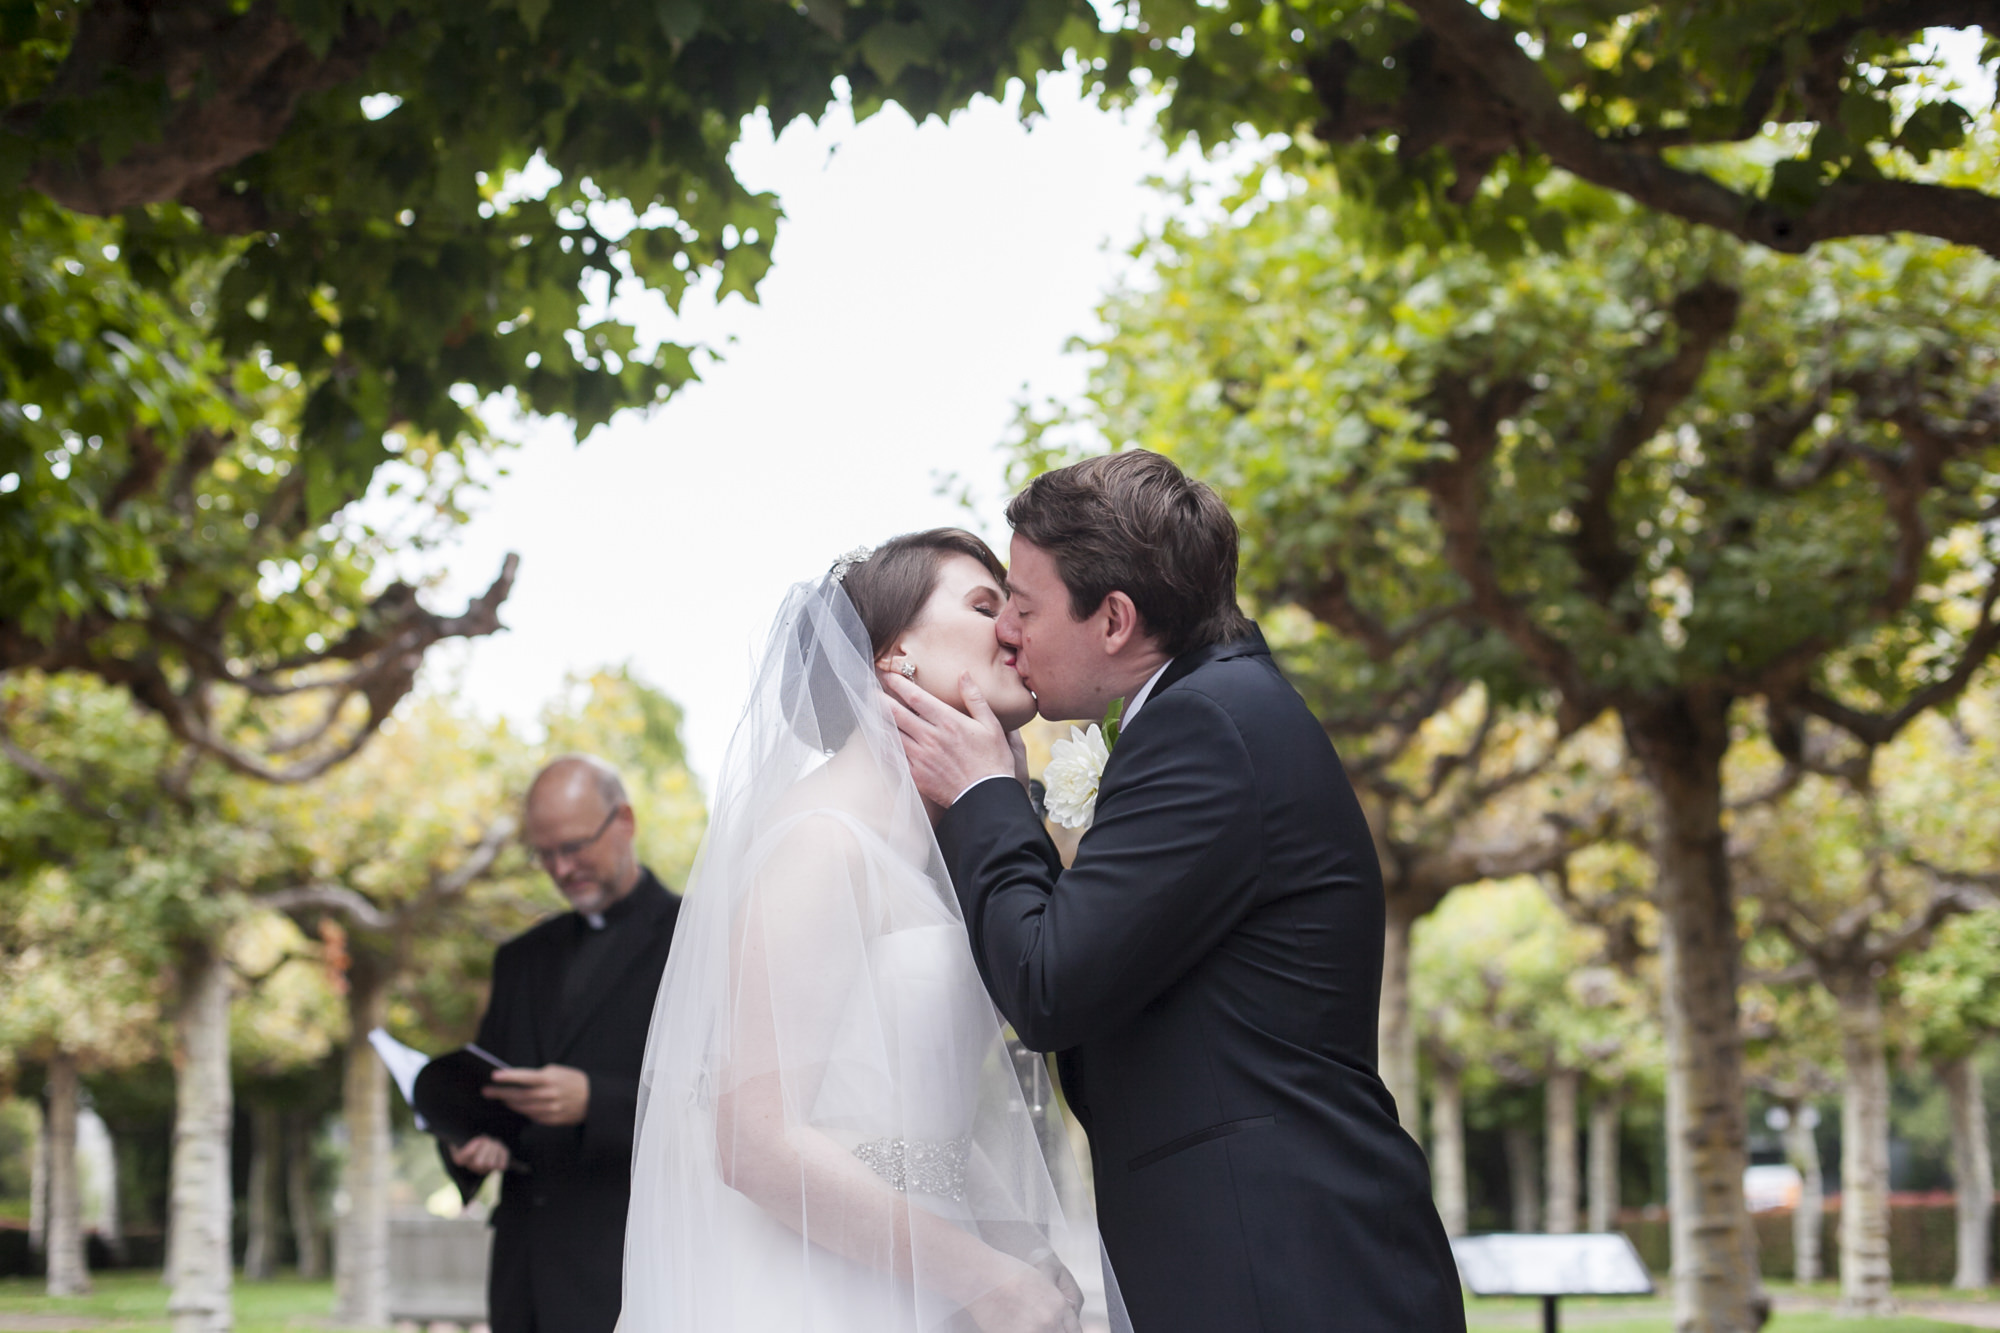 A couple's first kiss during their wedding ceremony at UC Berkeley